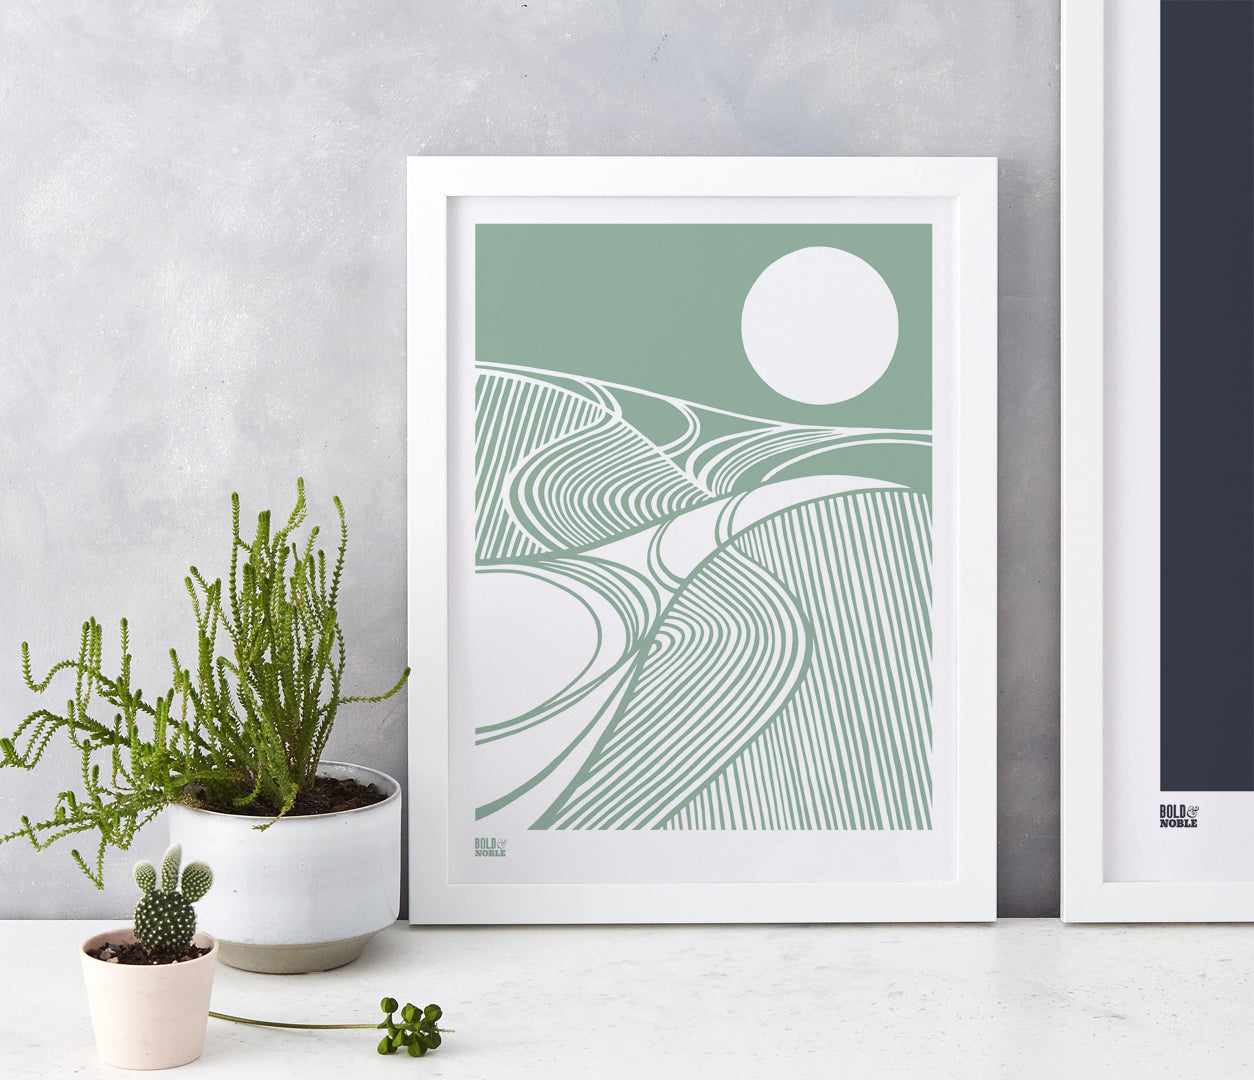 Harvest Field Moon Wall Art Print in Green, Modern Print Designs for the Home